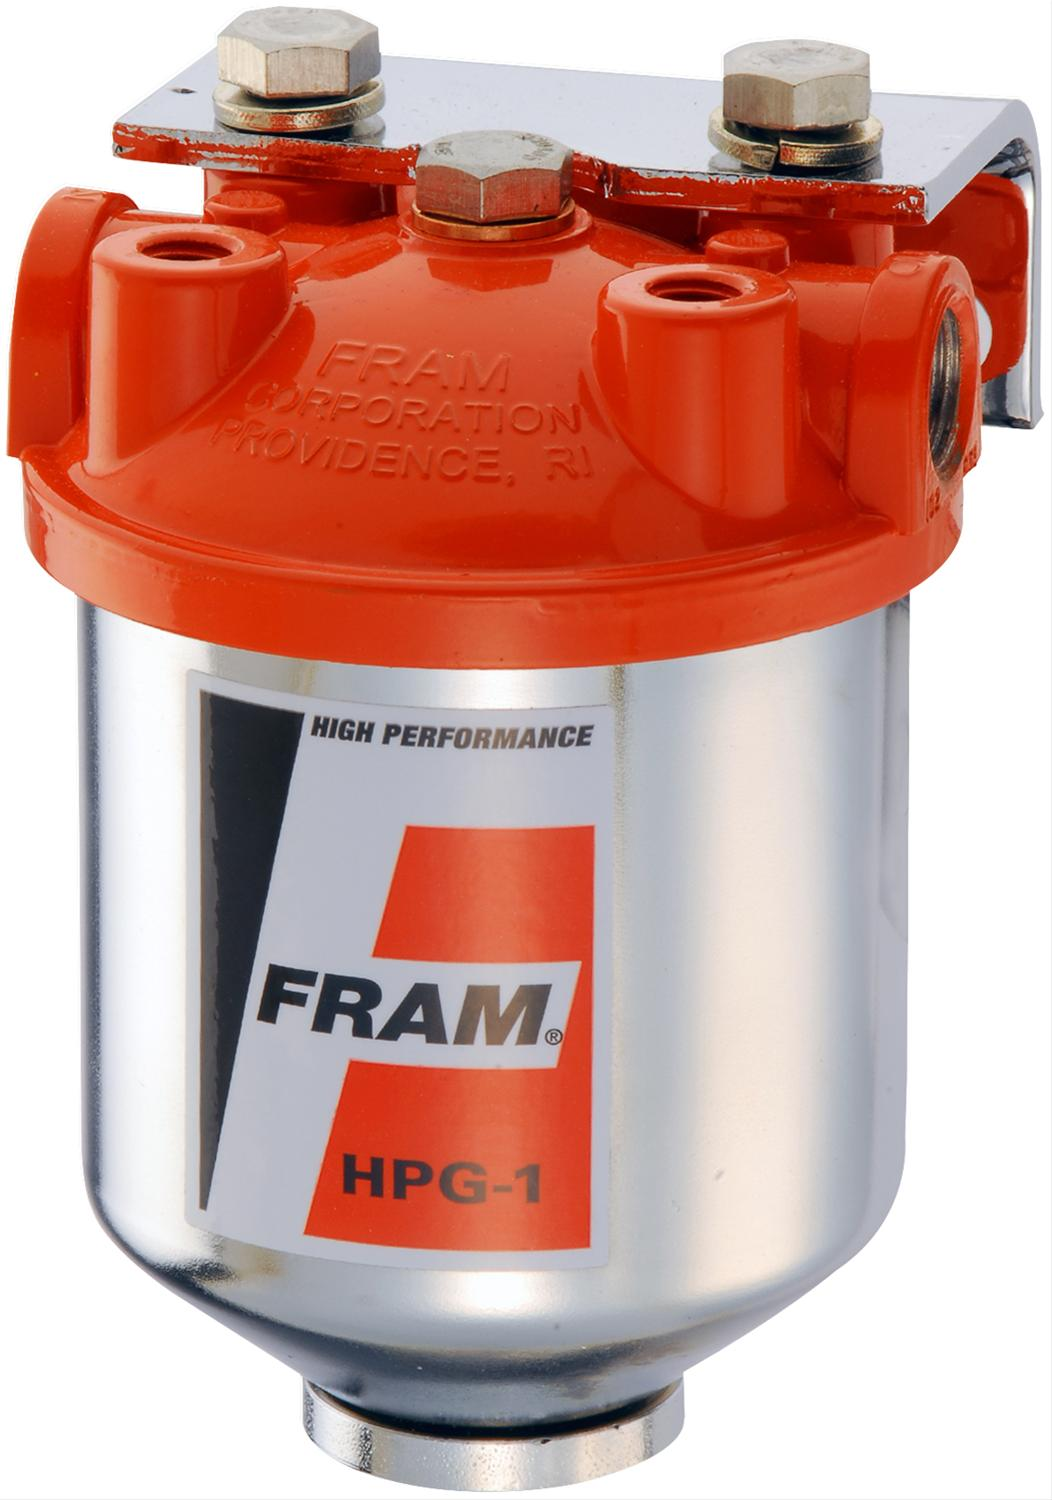 [SCHEMATICS_48IS]  FRAM G3515 In-Line Fuel Filter FRA:G3515 Fuel Filters | Fram Fuel Filters Bowls |  | Clay Clemens